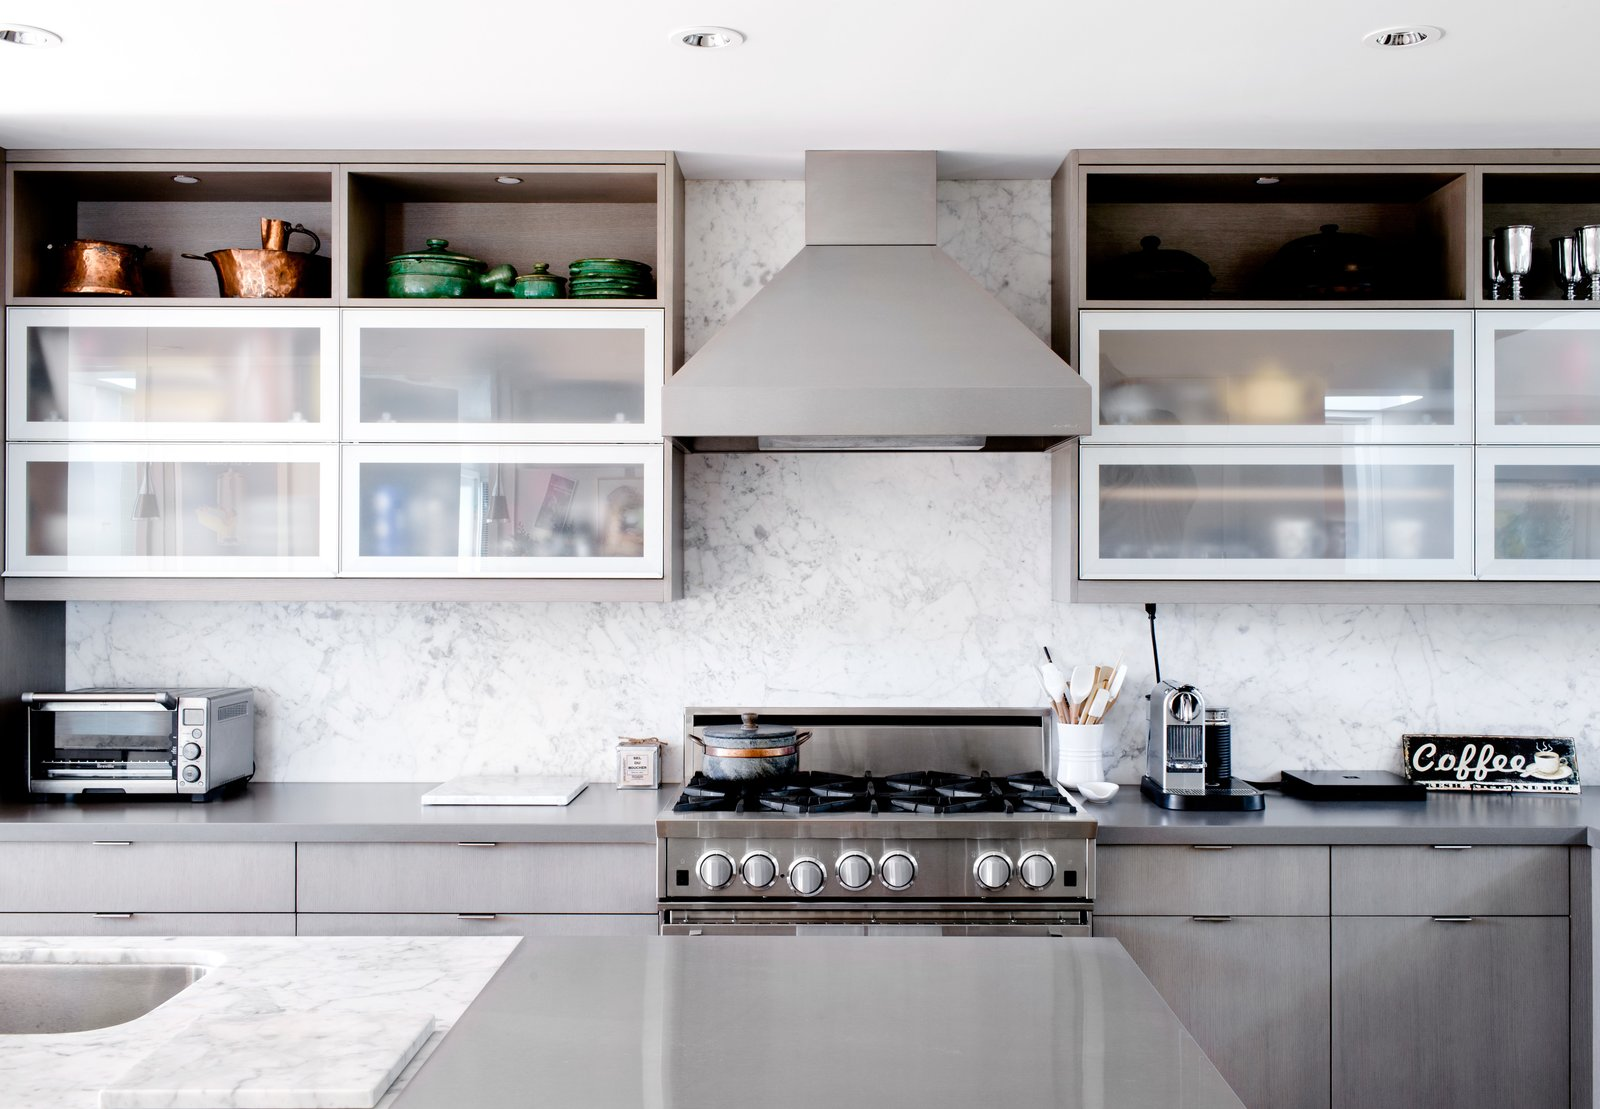 Charred House kitchen with quartz countertops and white open cabinets